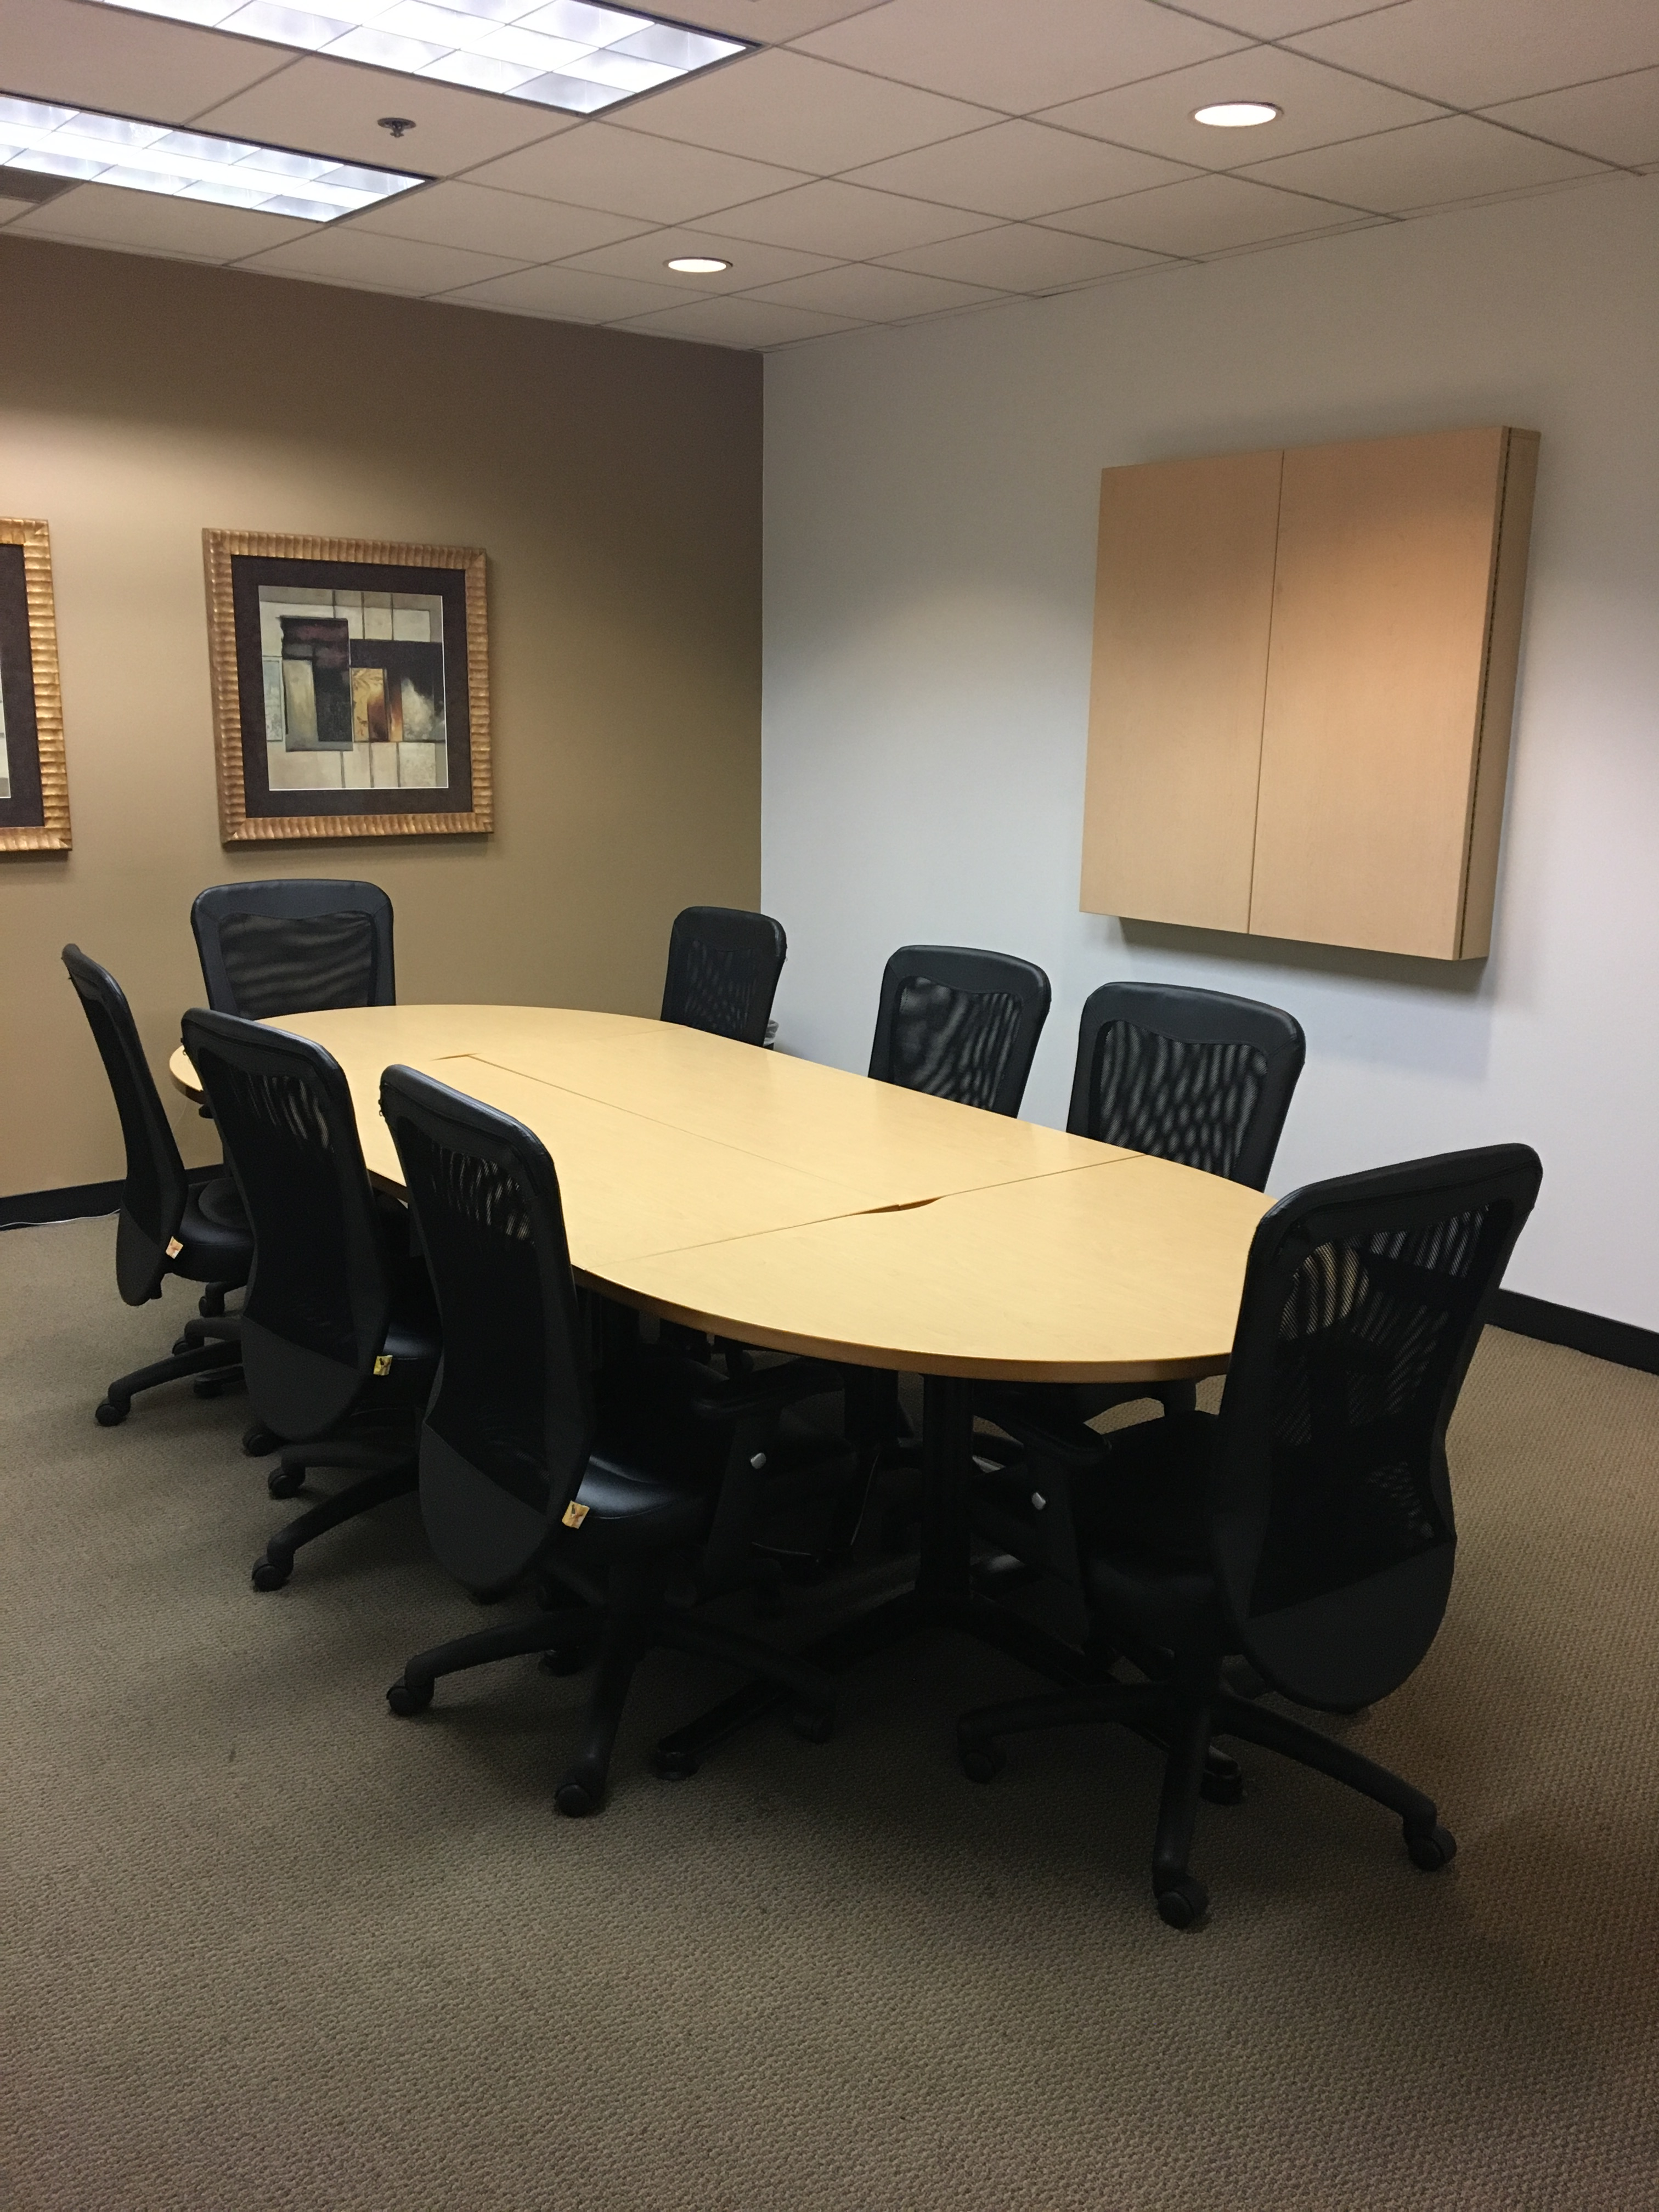 6 Large C Conference Room Venue For Rent In Los Angeles